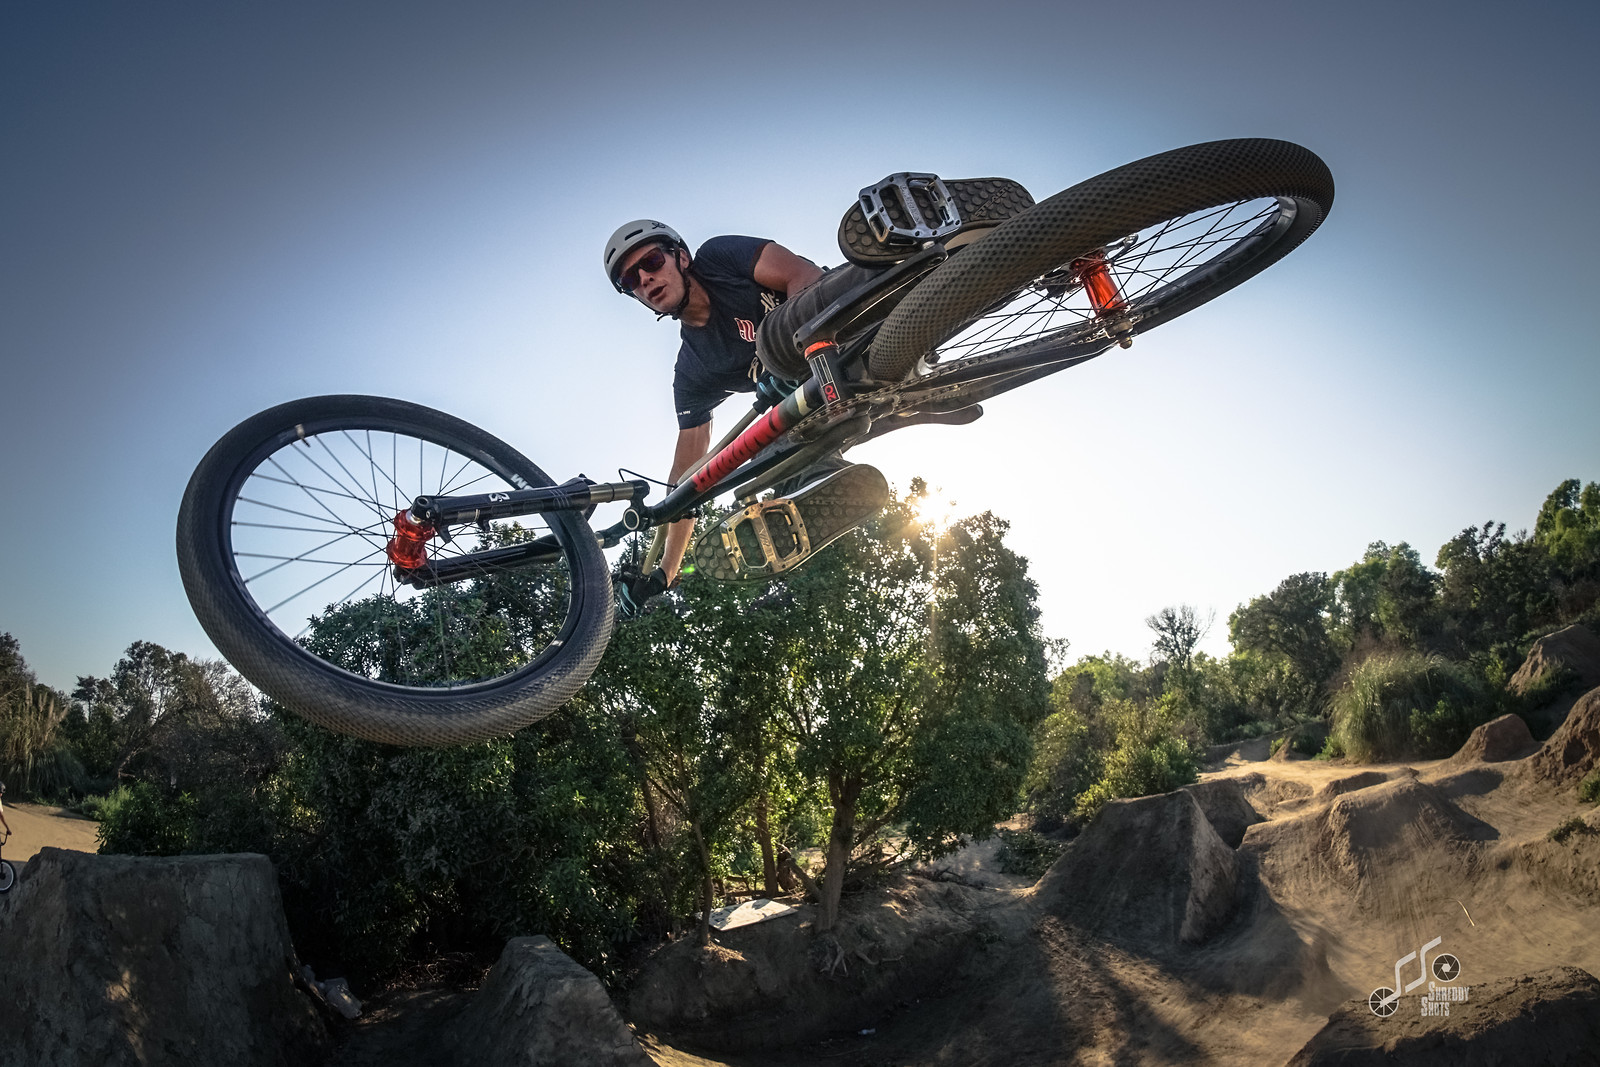 Brian Super tight - shreddyshots - Mountain Biking Pictures - Vital MTB